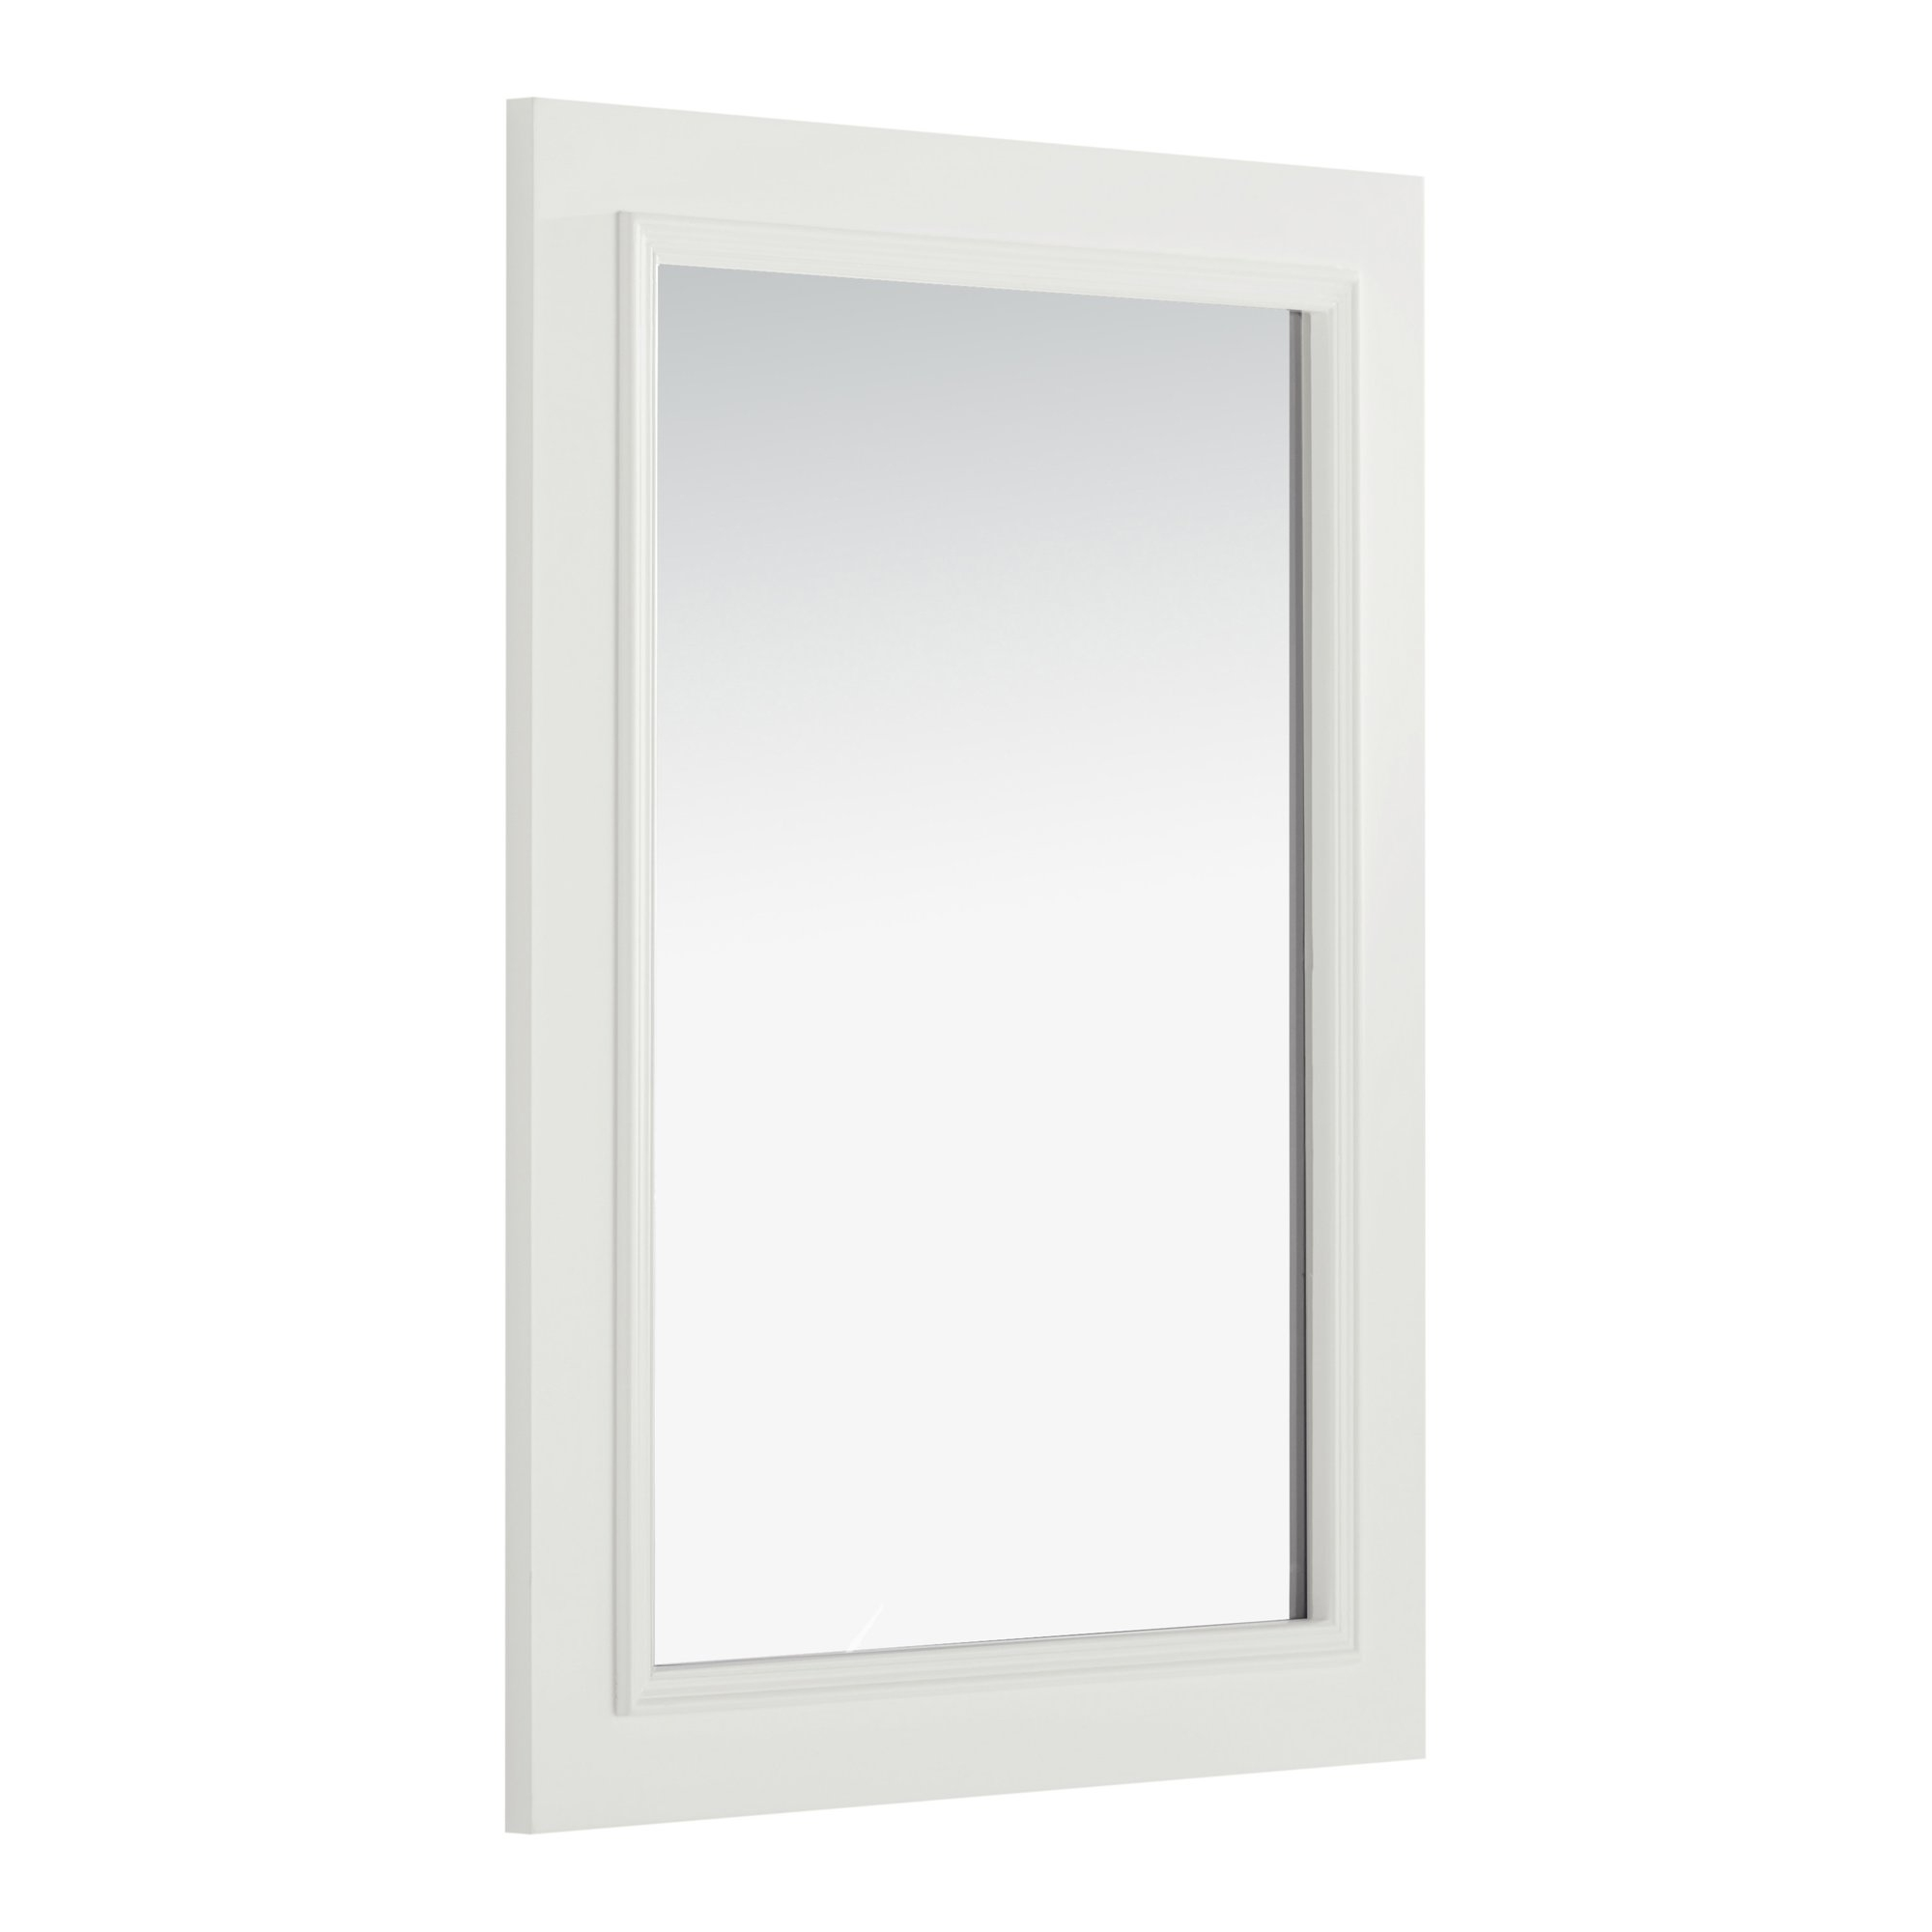 Rectangle Mirrors Youll Love Wayfair Inside Slim Wall Mirror (Image 10 of 15)